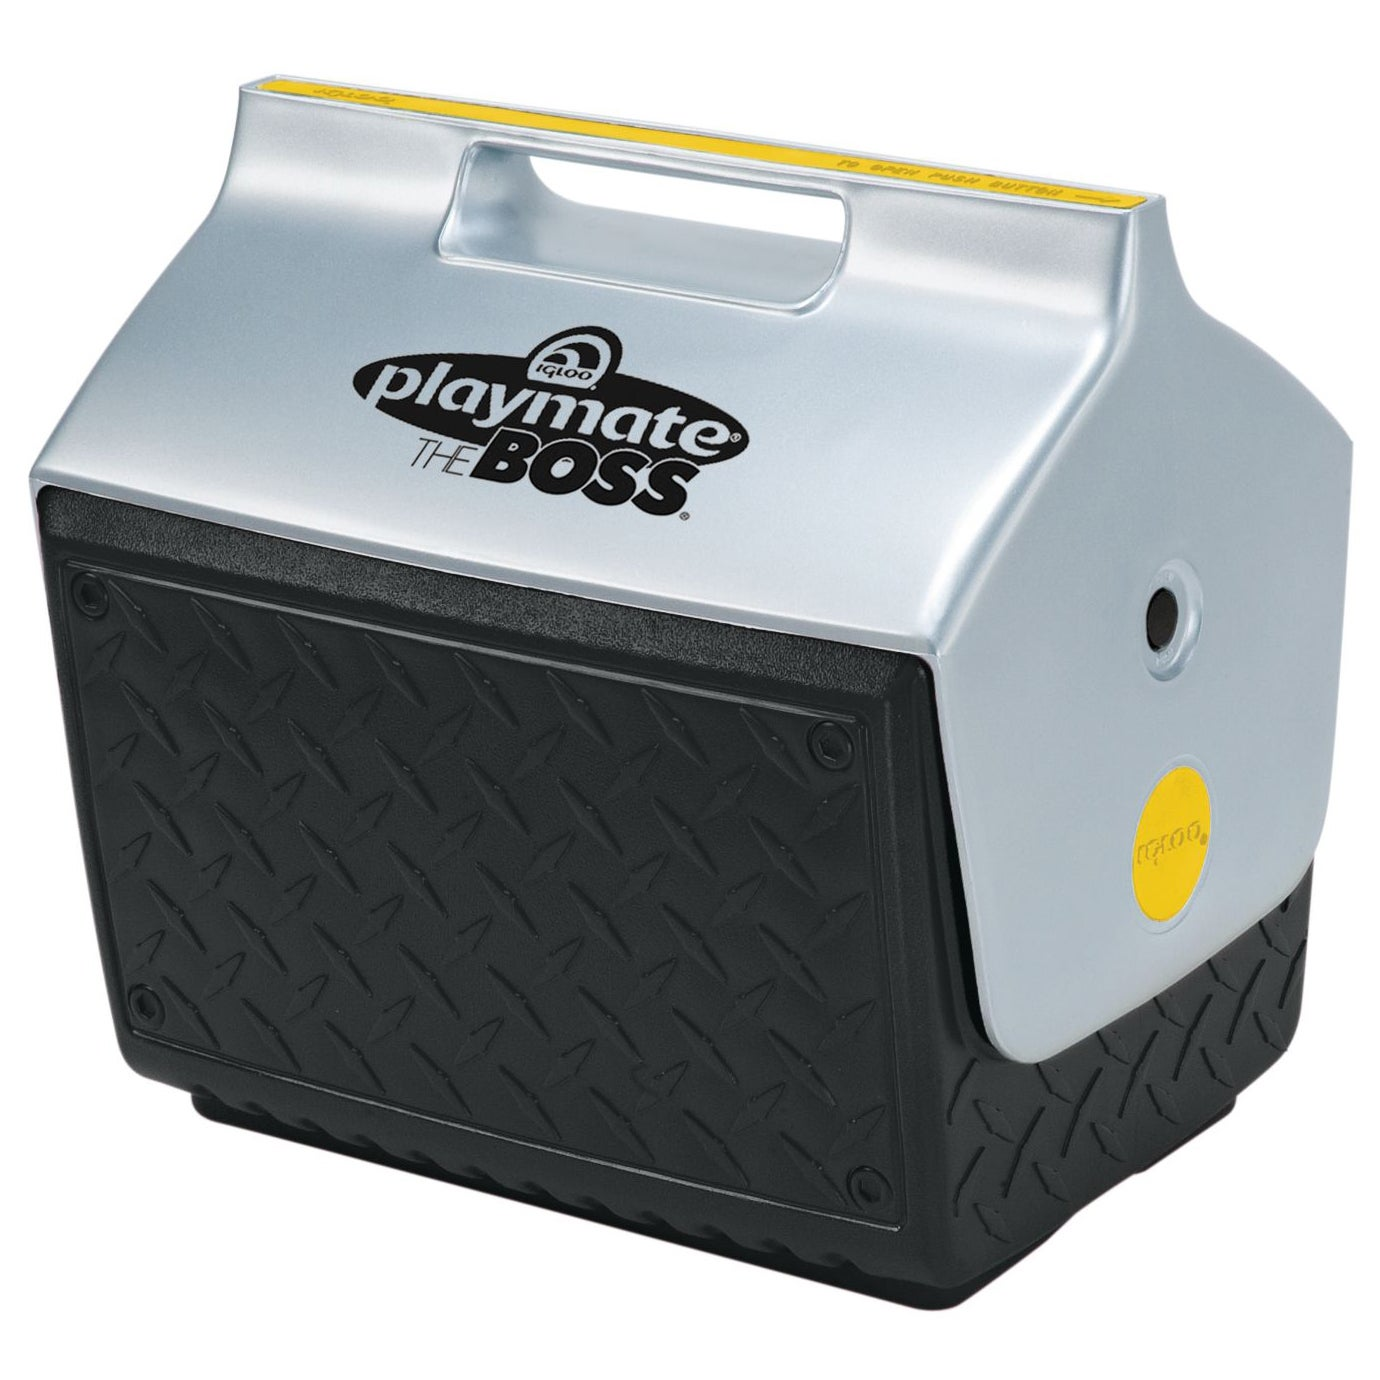 Igloo 43581 Playmate The Boss Cooler (Black Silver Yellow...